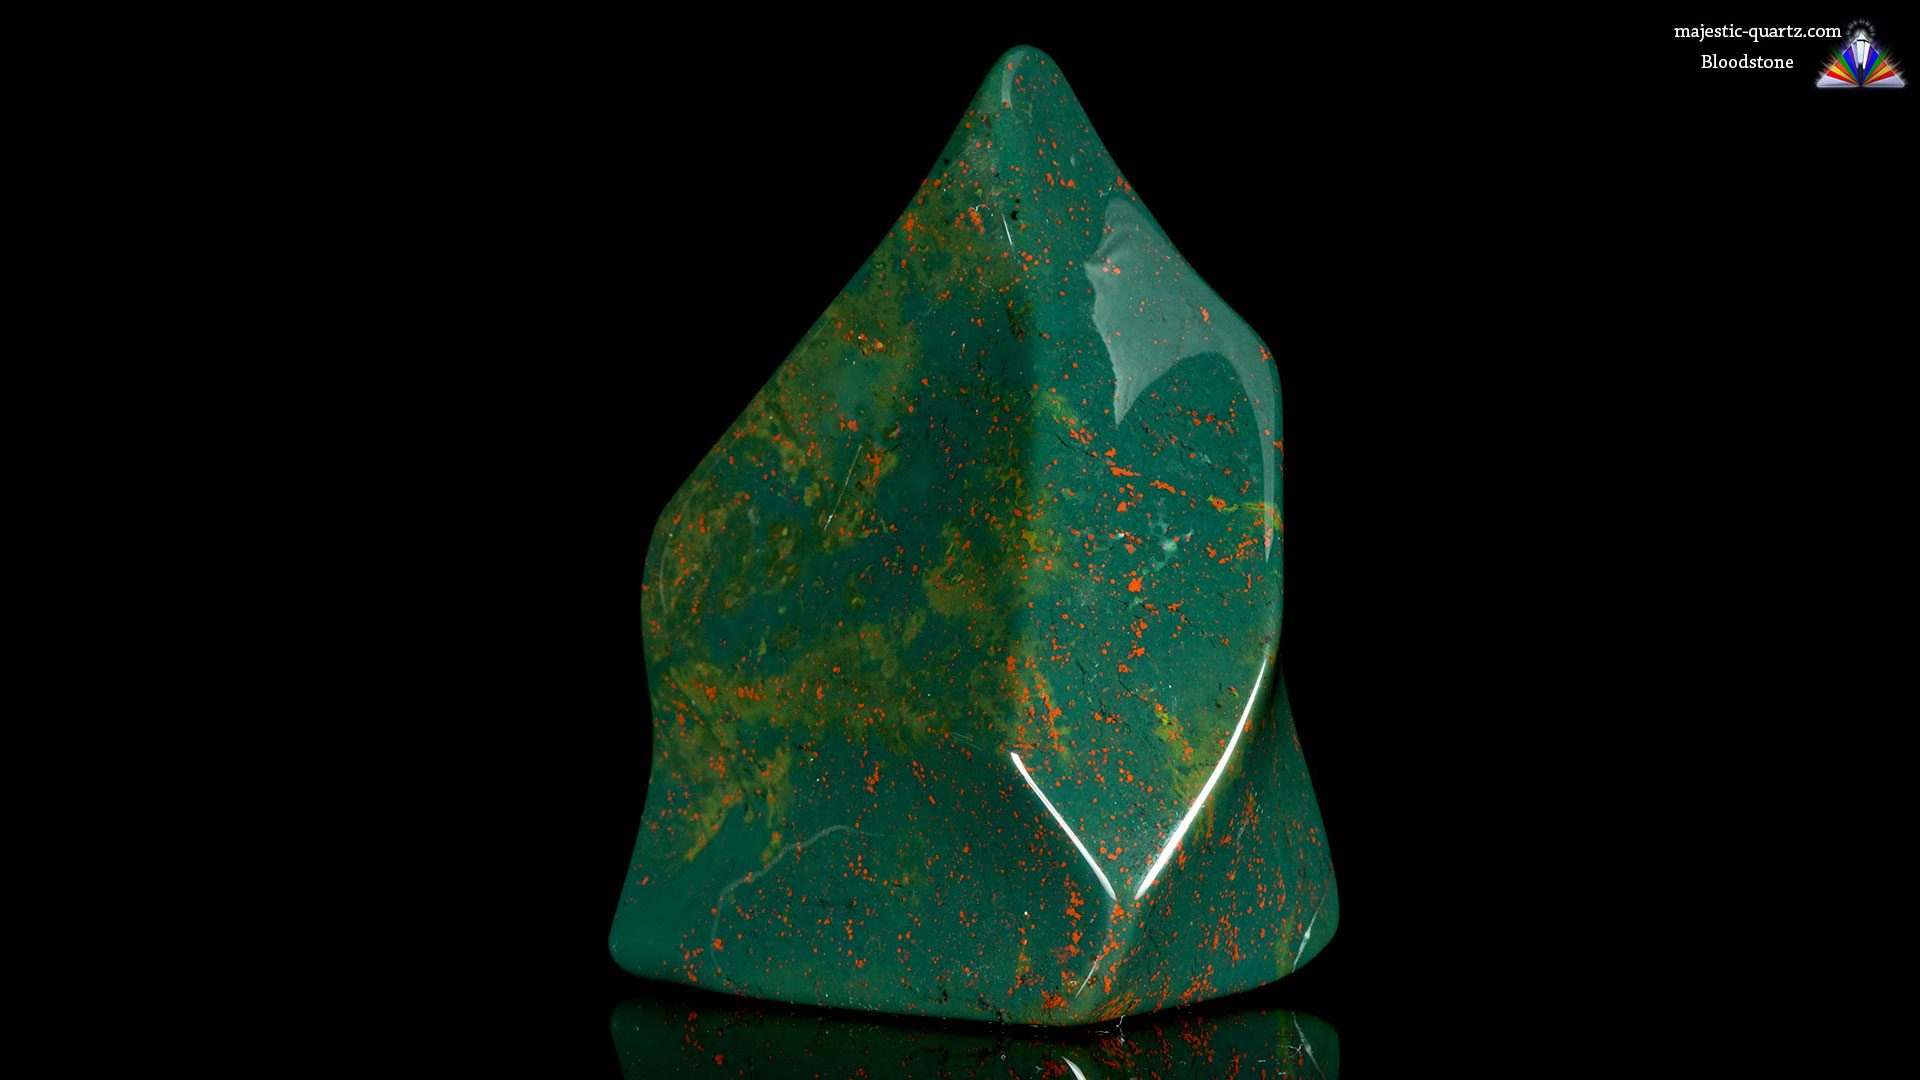 Bloodstone Flame - Photograph by Anthony Bradford